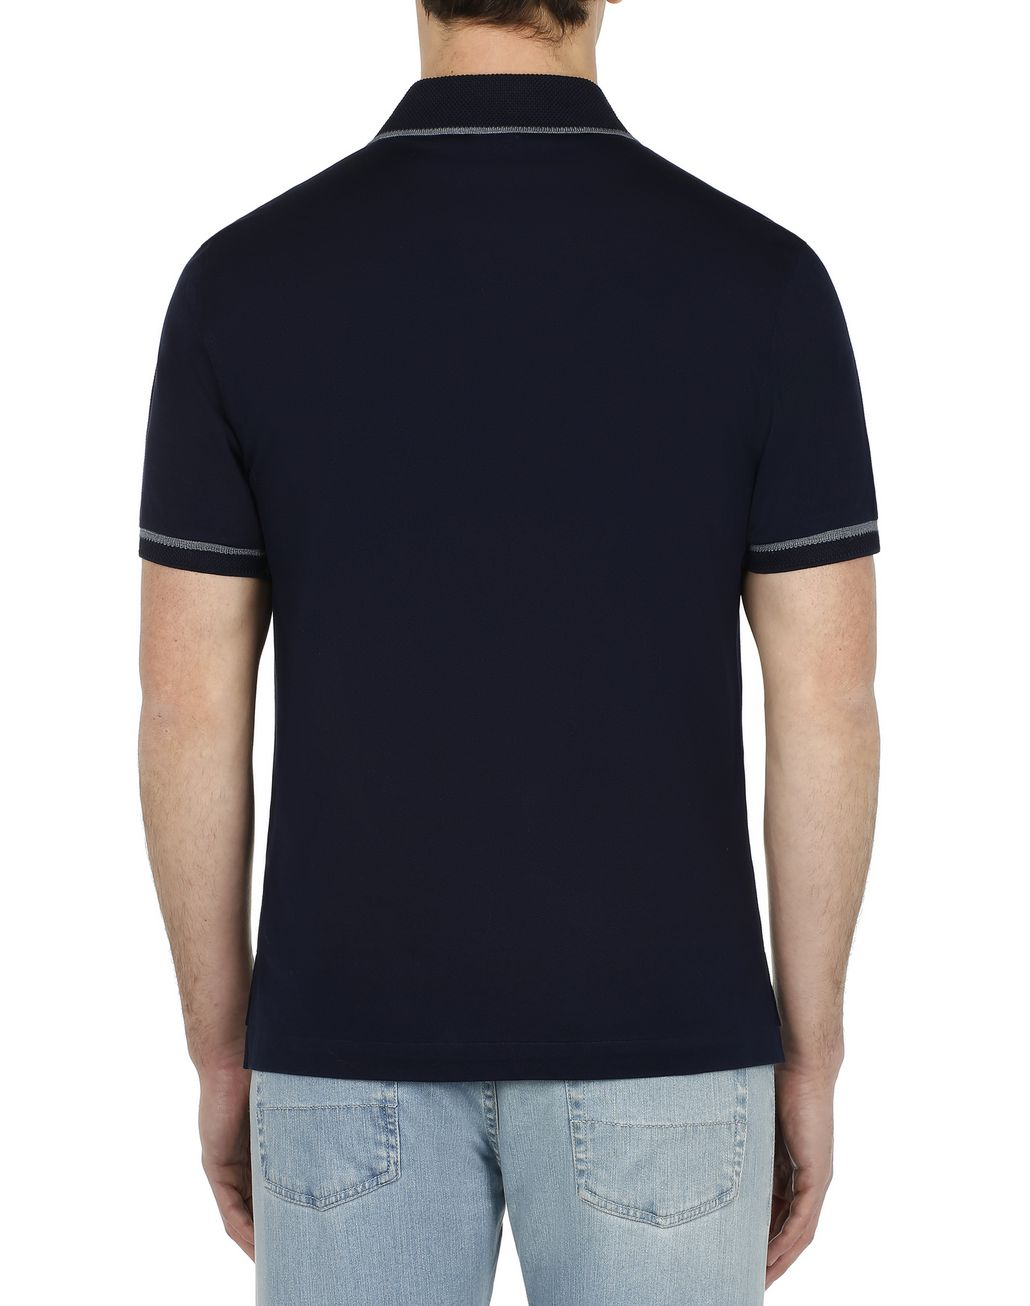 fa4df4ae Brioni Men's T Shirts & Polos | Brioni Official Online Store